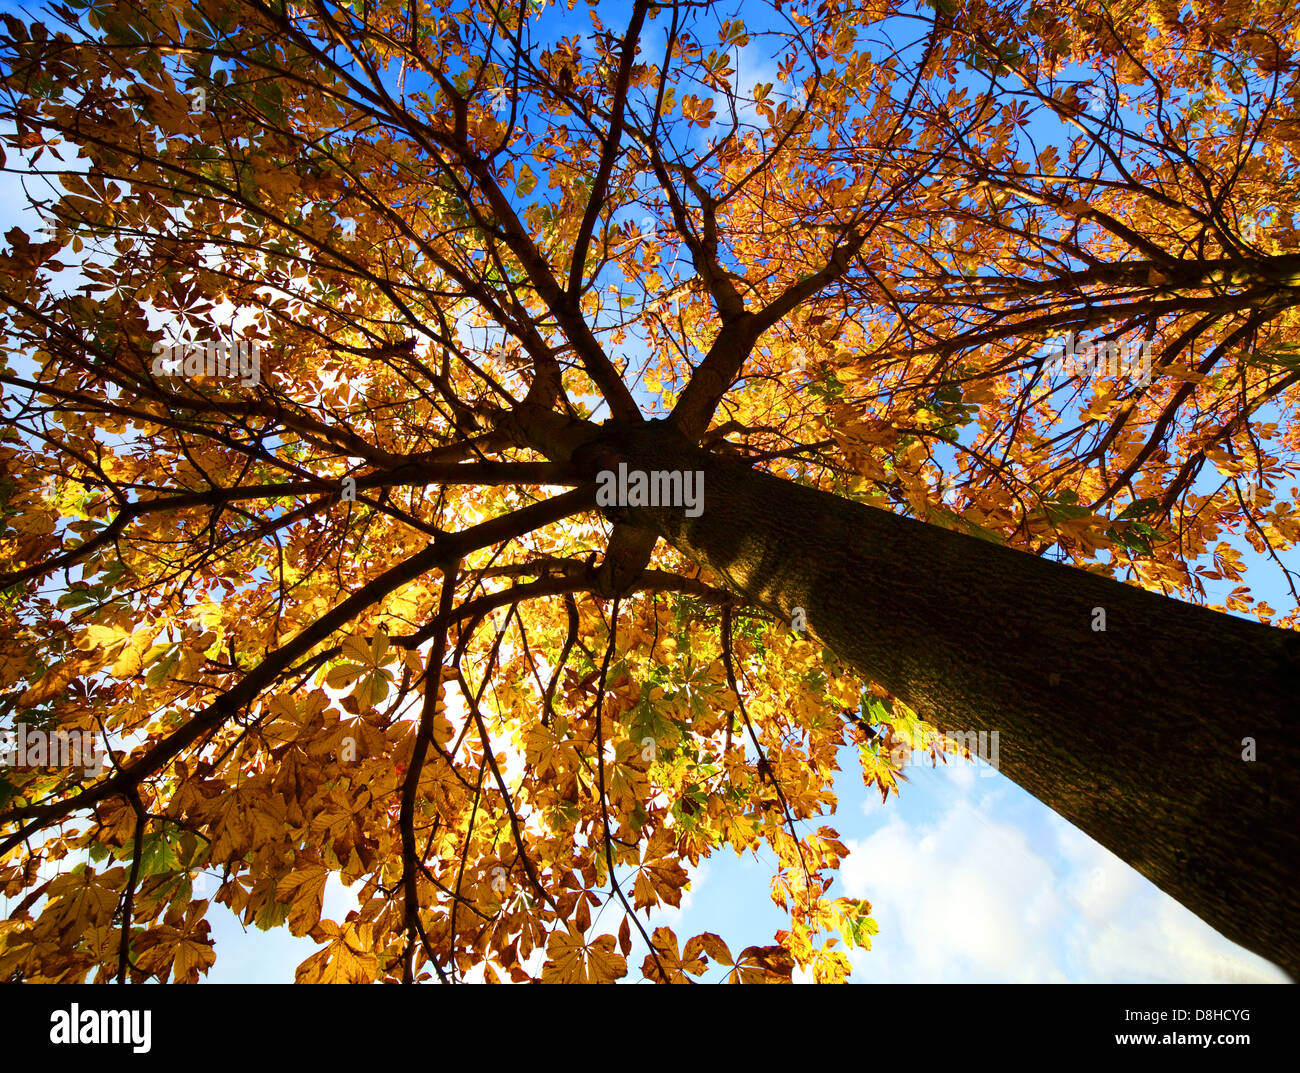 the,fall,into,sky,blue,autumnal,yellow,gold,trees,Grappenhall,Heys,Walled,Garden,forest,wood,sunset,sunrise,lighting,dramatic,drama,Sycamore,up,upwards,skywards,collection,sales,gotonysmith,Buy Pictures of,Buy Images Of